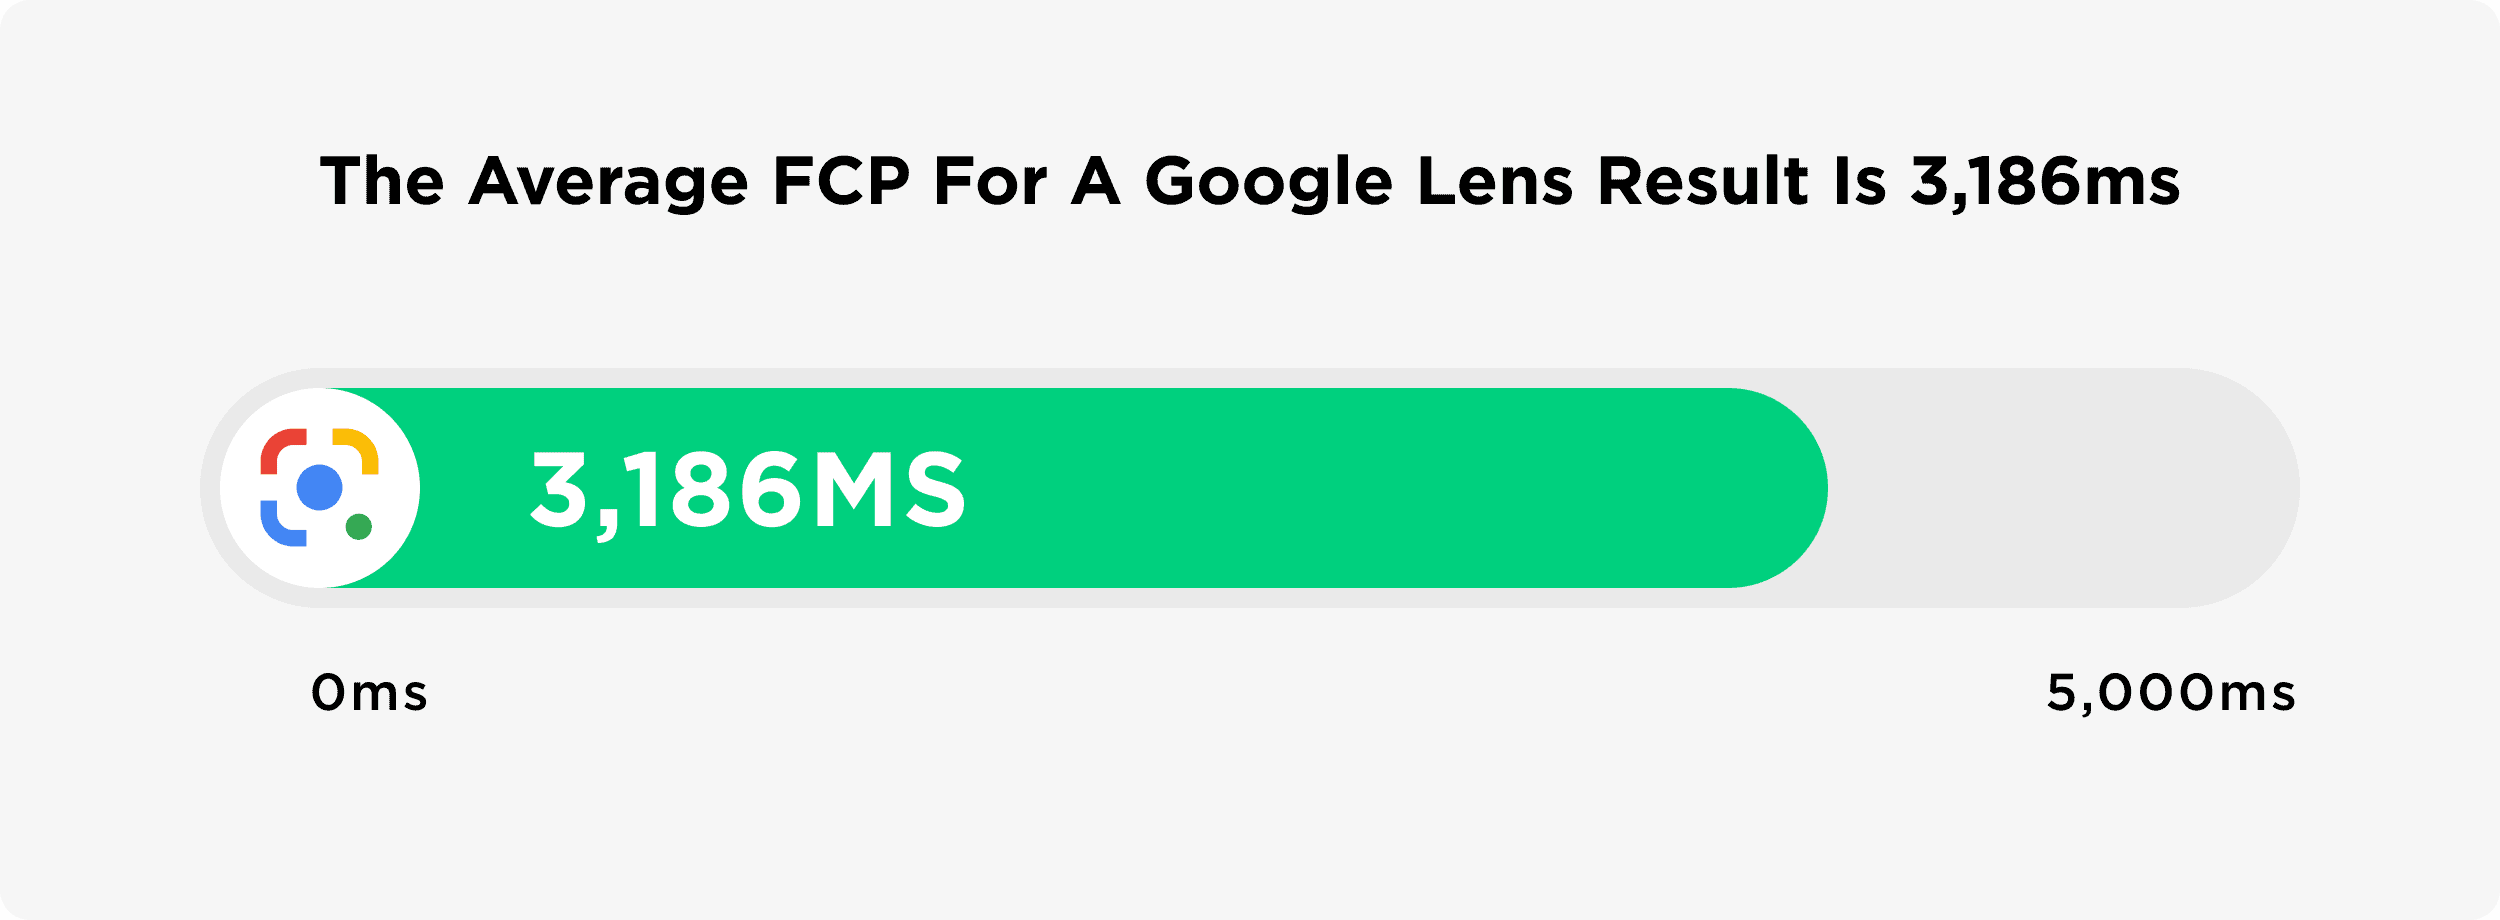 The Average FCP For A Google Lens Results In 3186ms